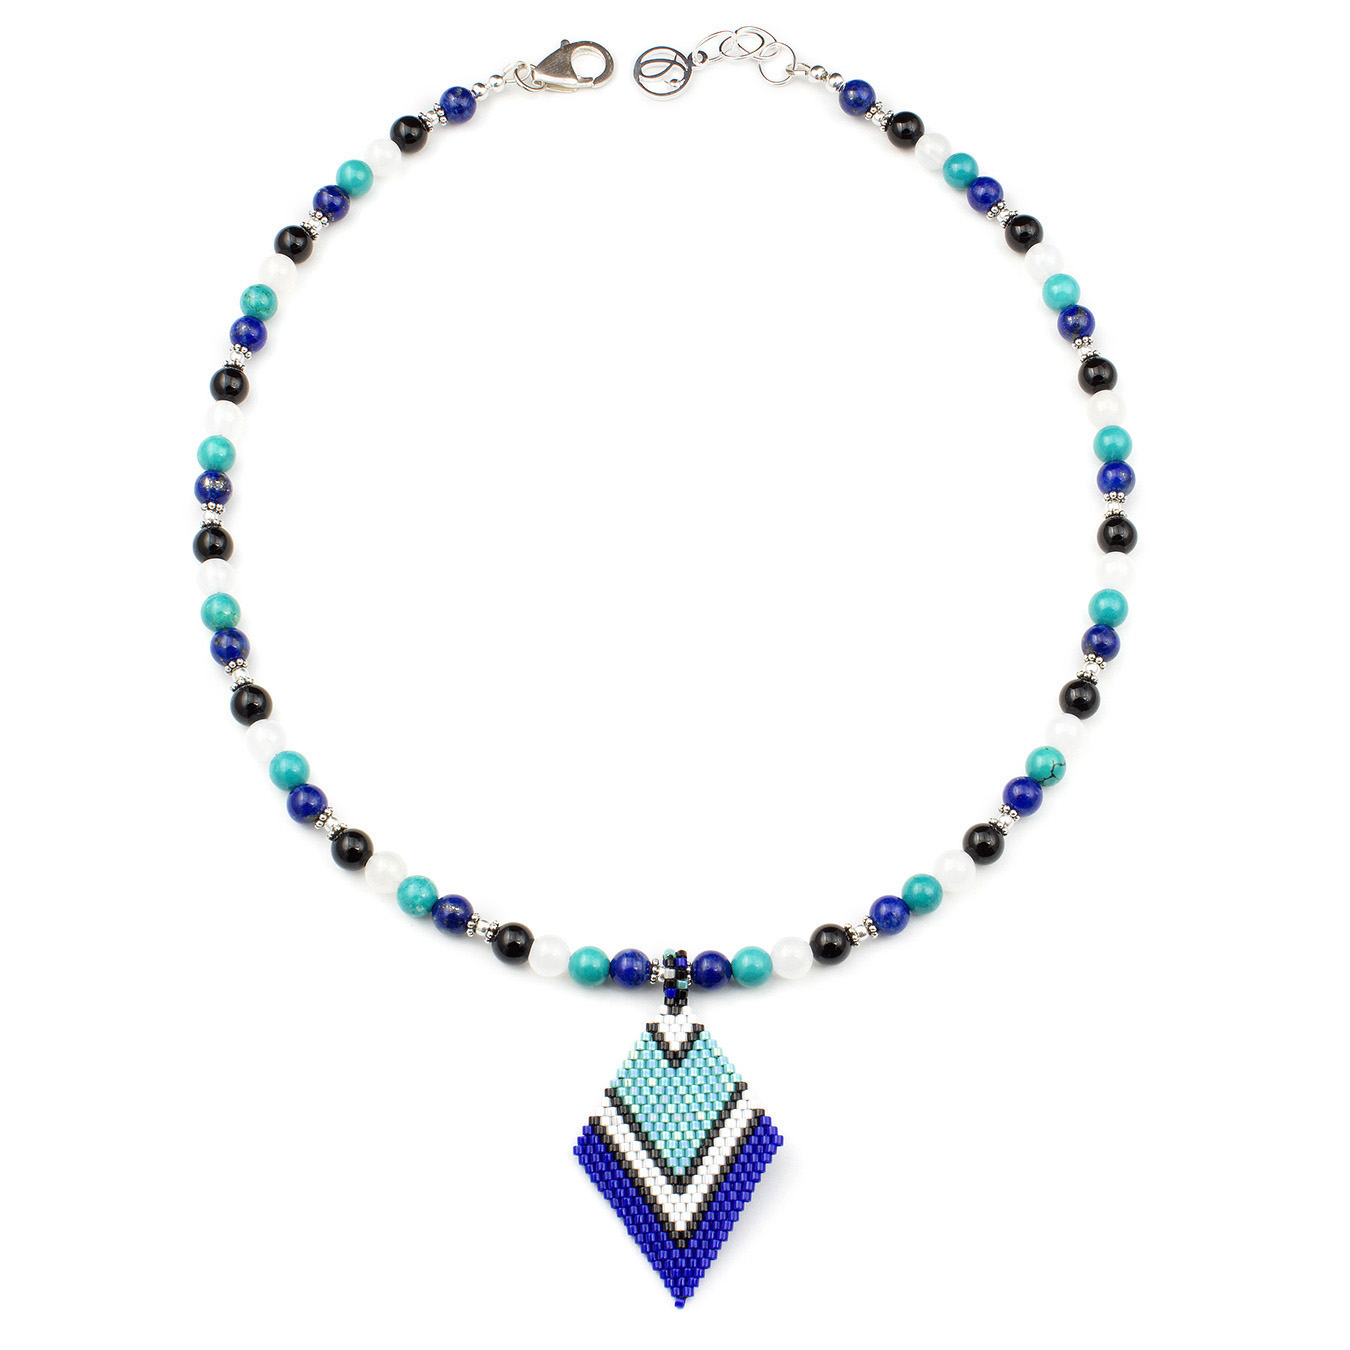 Customizable delica pendant necklace with agate, lapis, and turquoise